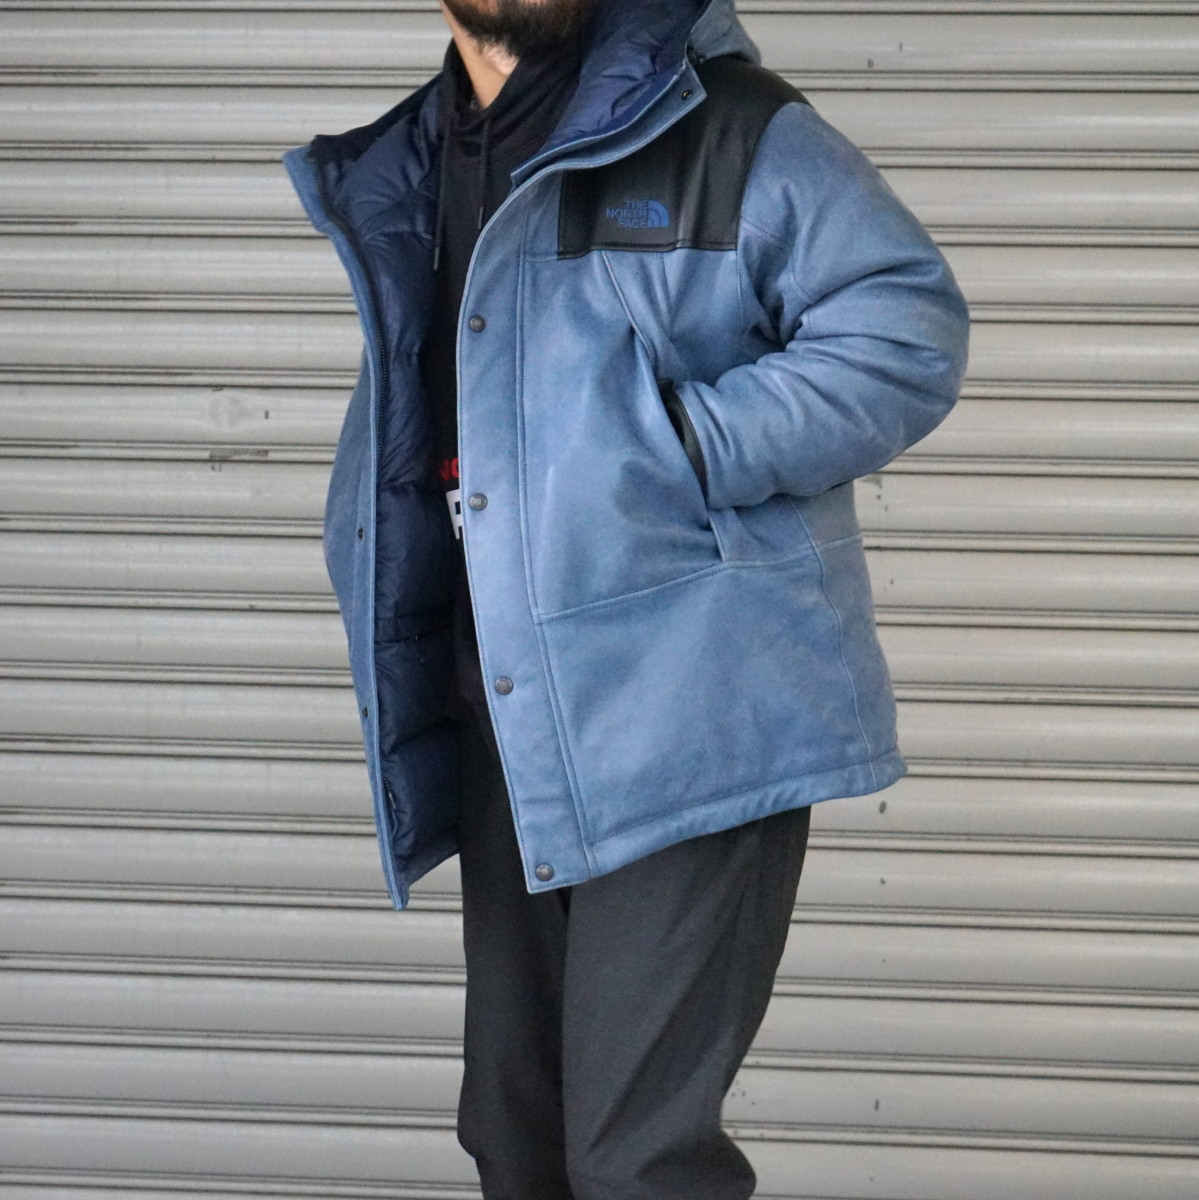 [STYLE] December.4th.2018